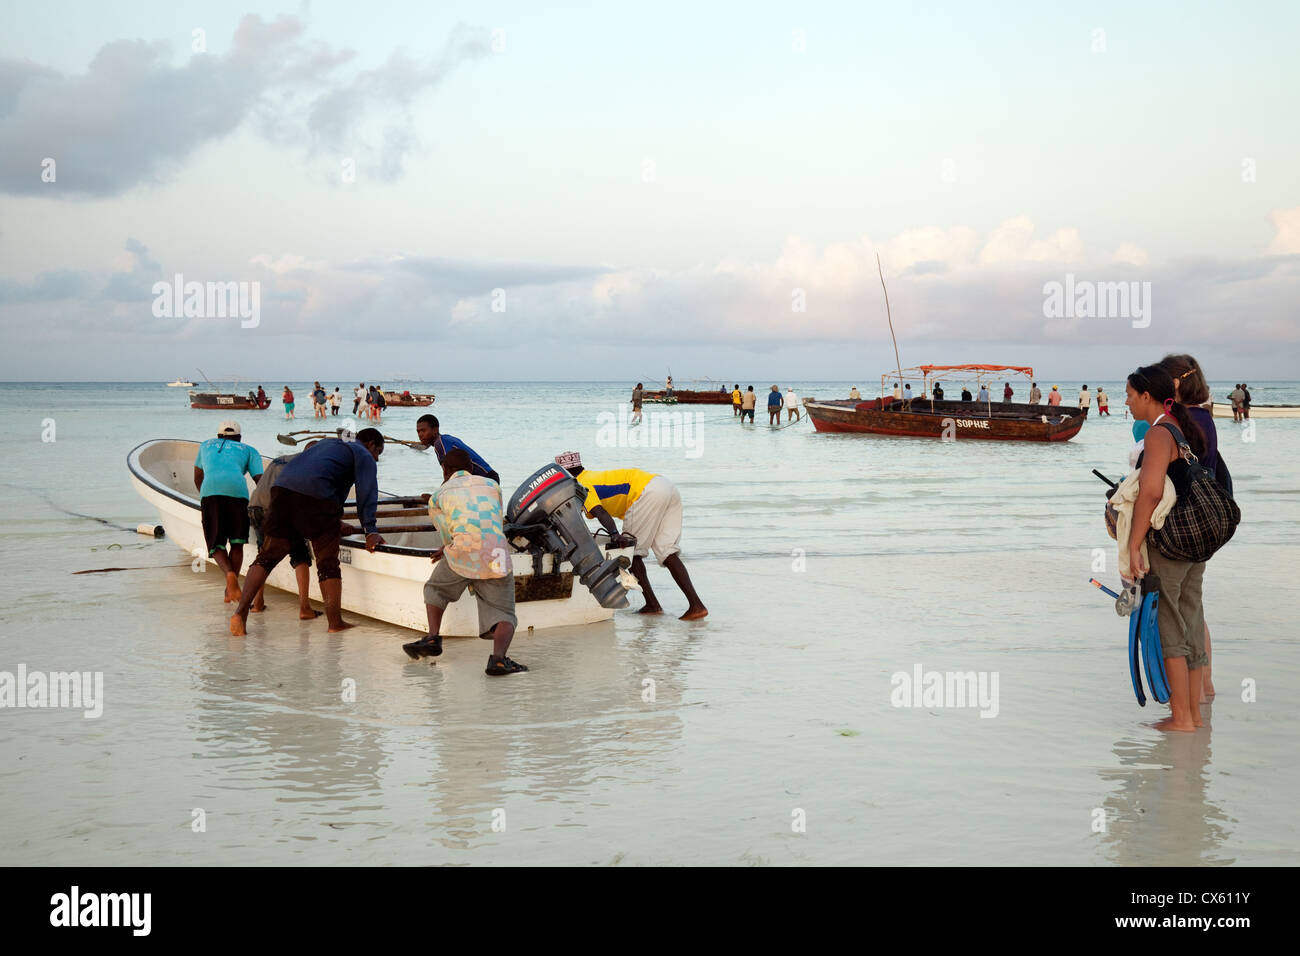 Tourists watching as their boat is pushed out for dolphin watching, Kizimkazi beach, Zanzibar Africa - Stock Image